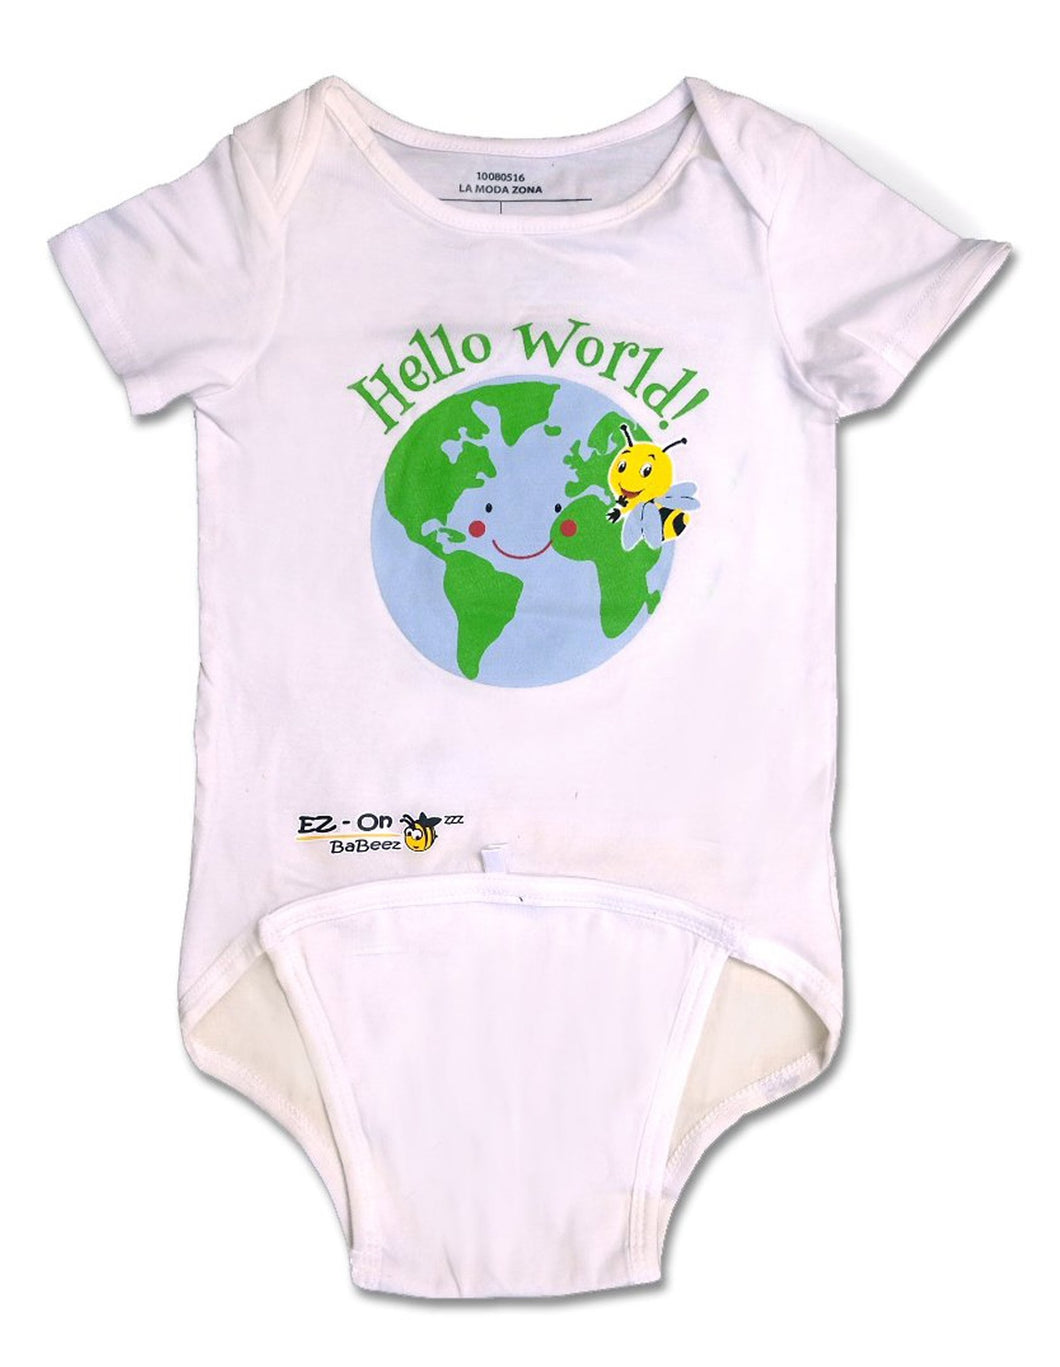 EZ-On BaBeez™ - Spring & Summer - Hello World - on White - Baby Bodysuit